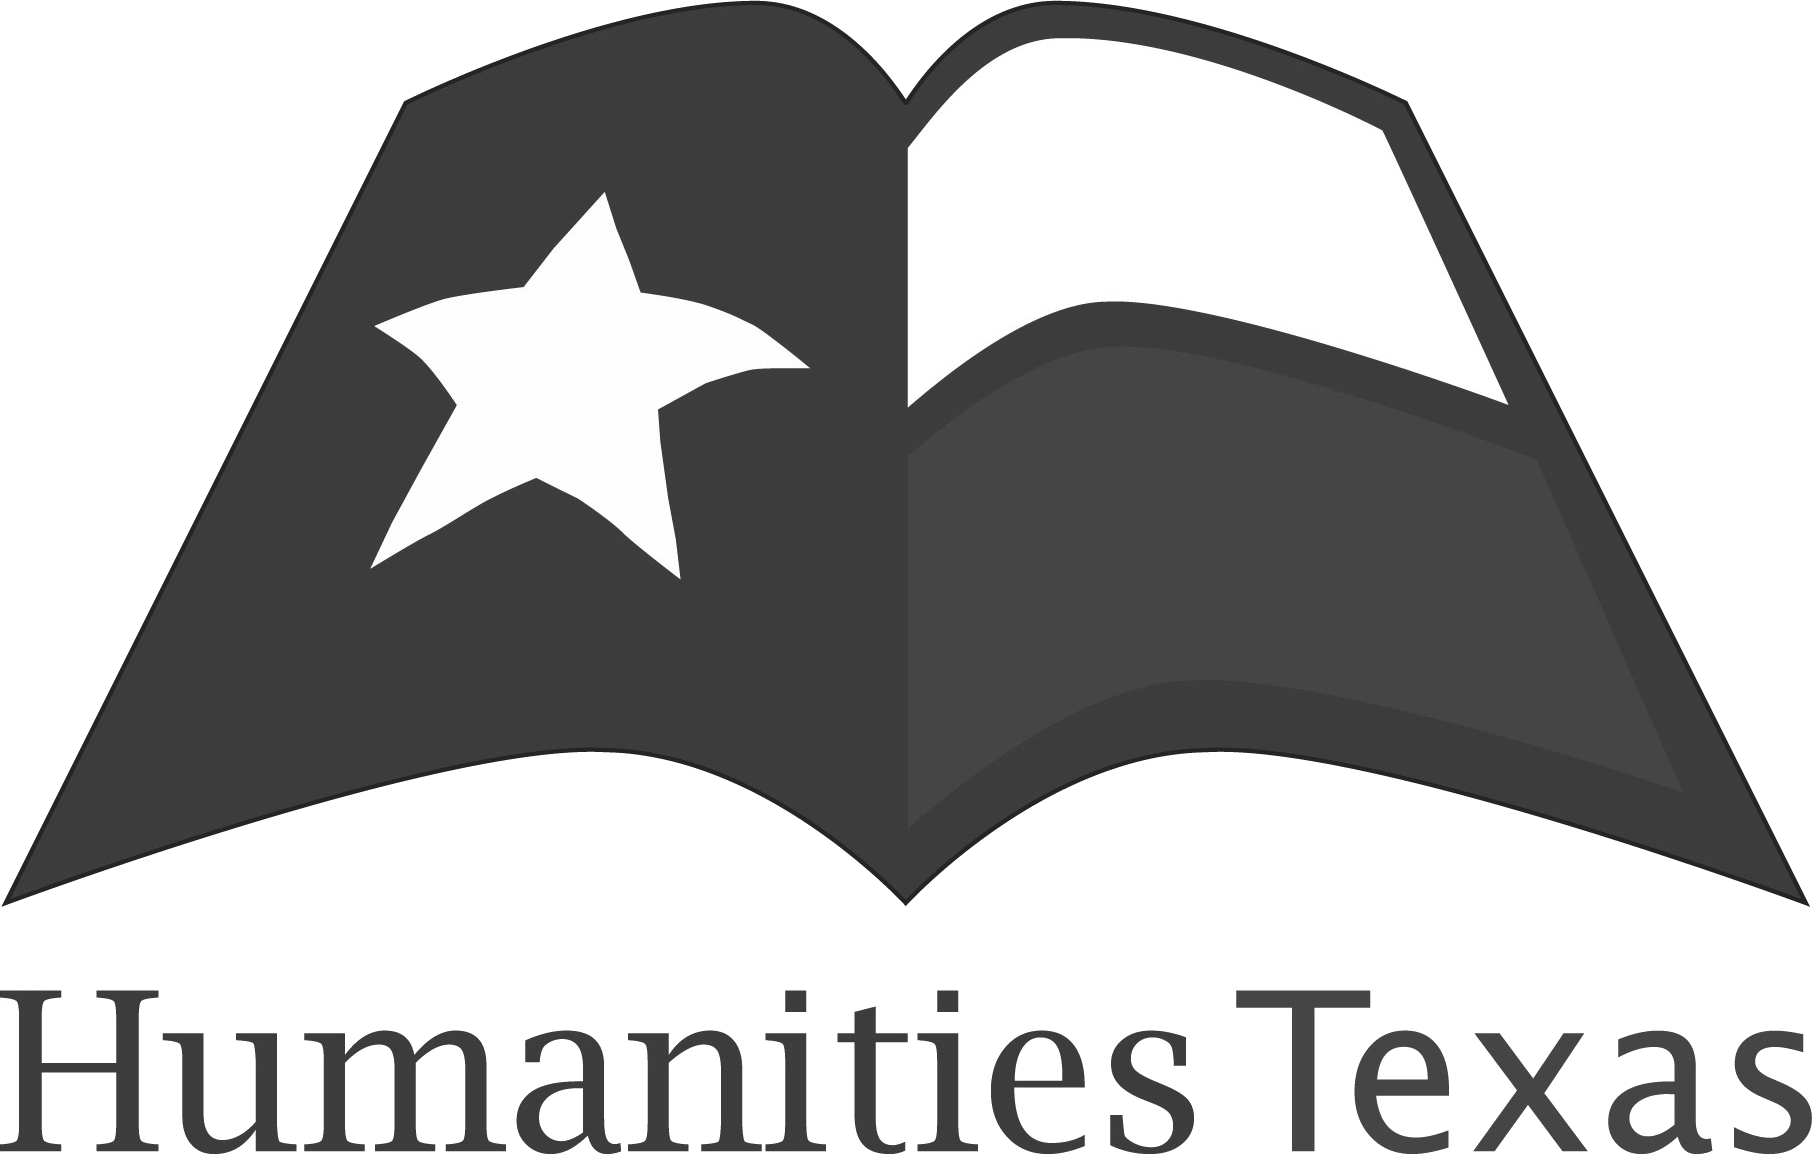 Funder: Humanities Texas